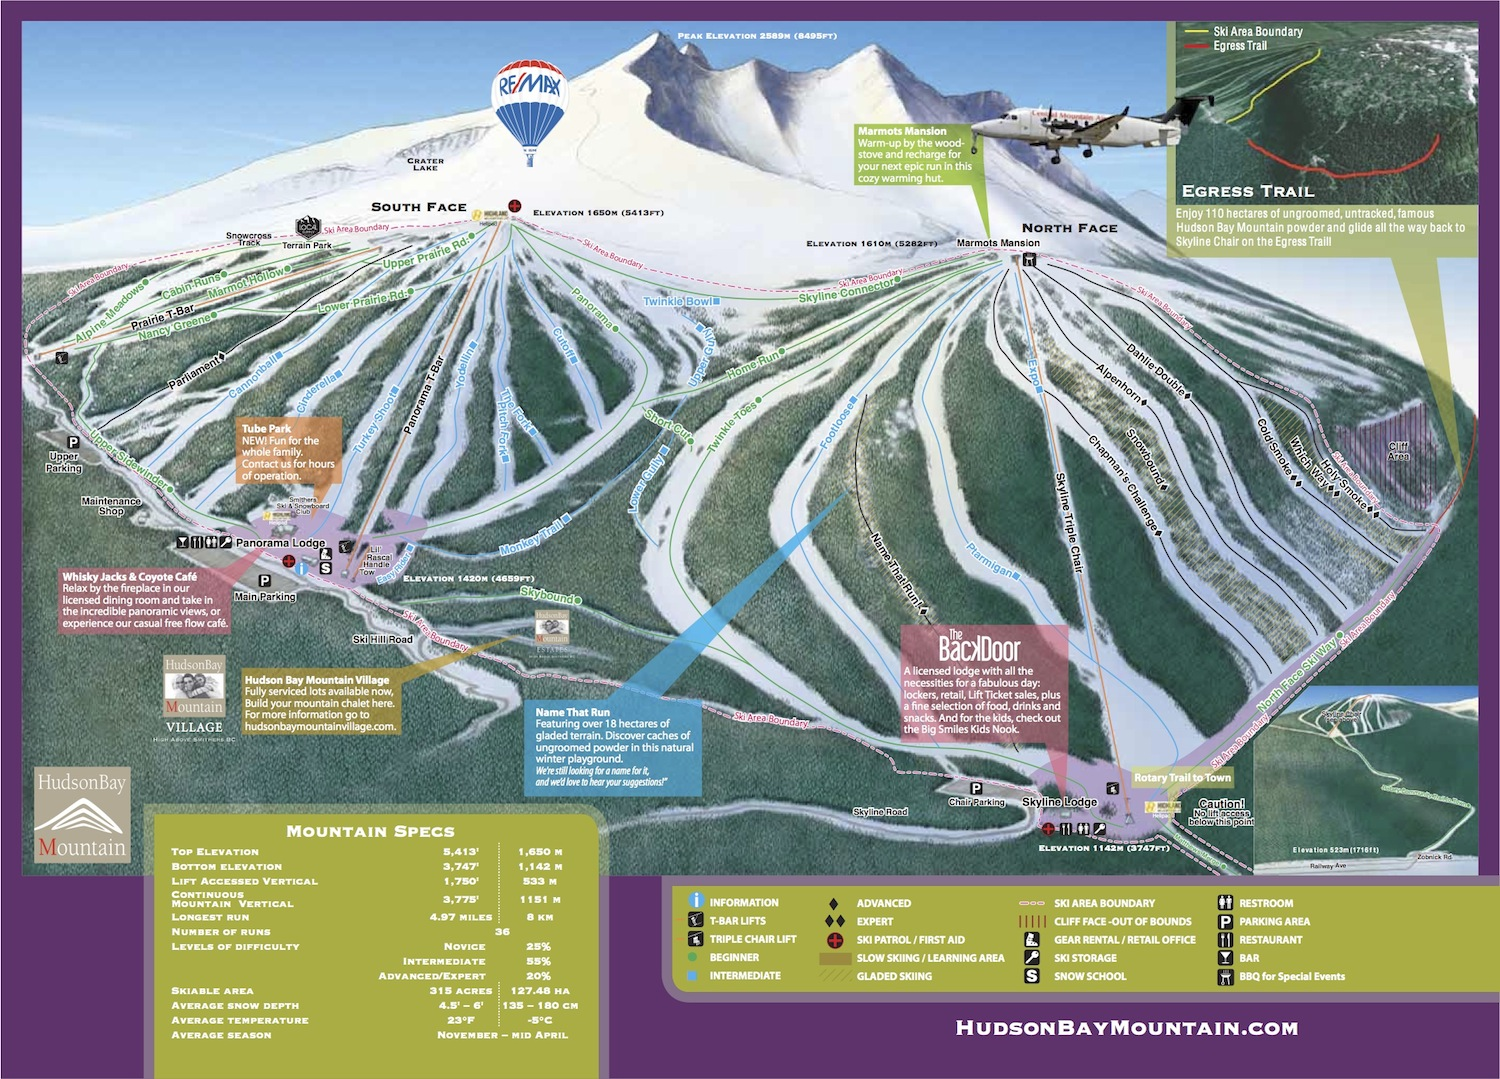 Hudson Bay Mountain Piste / Trail Map